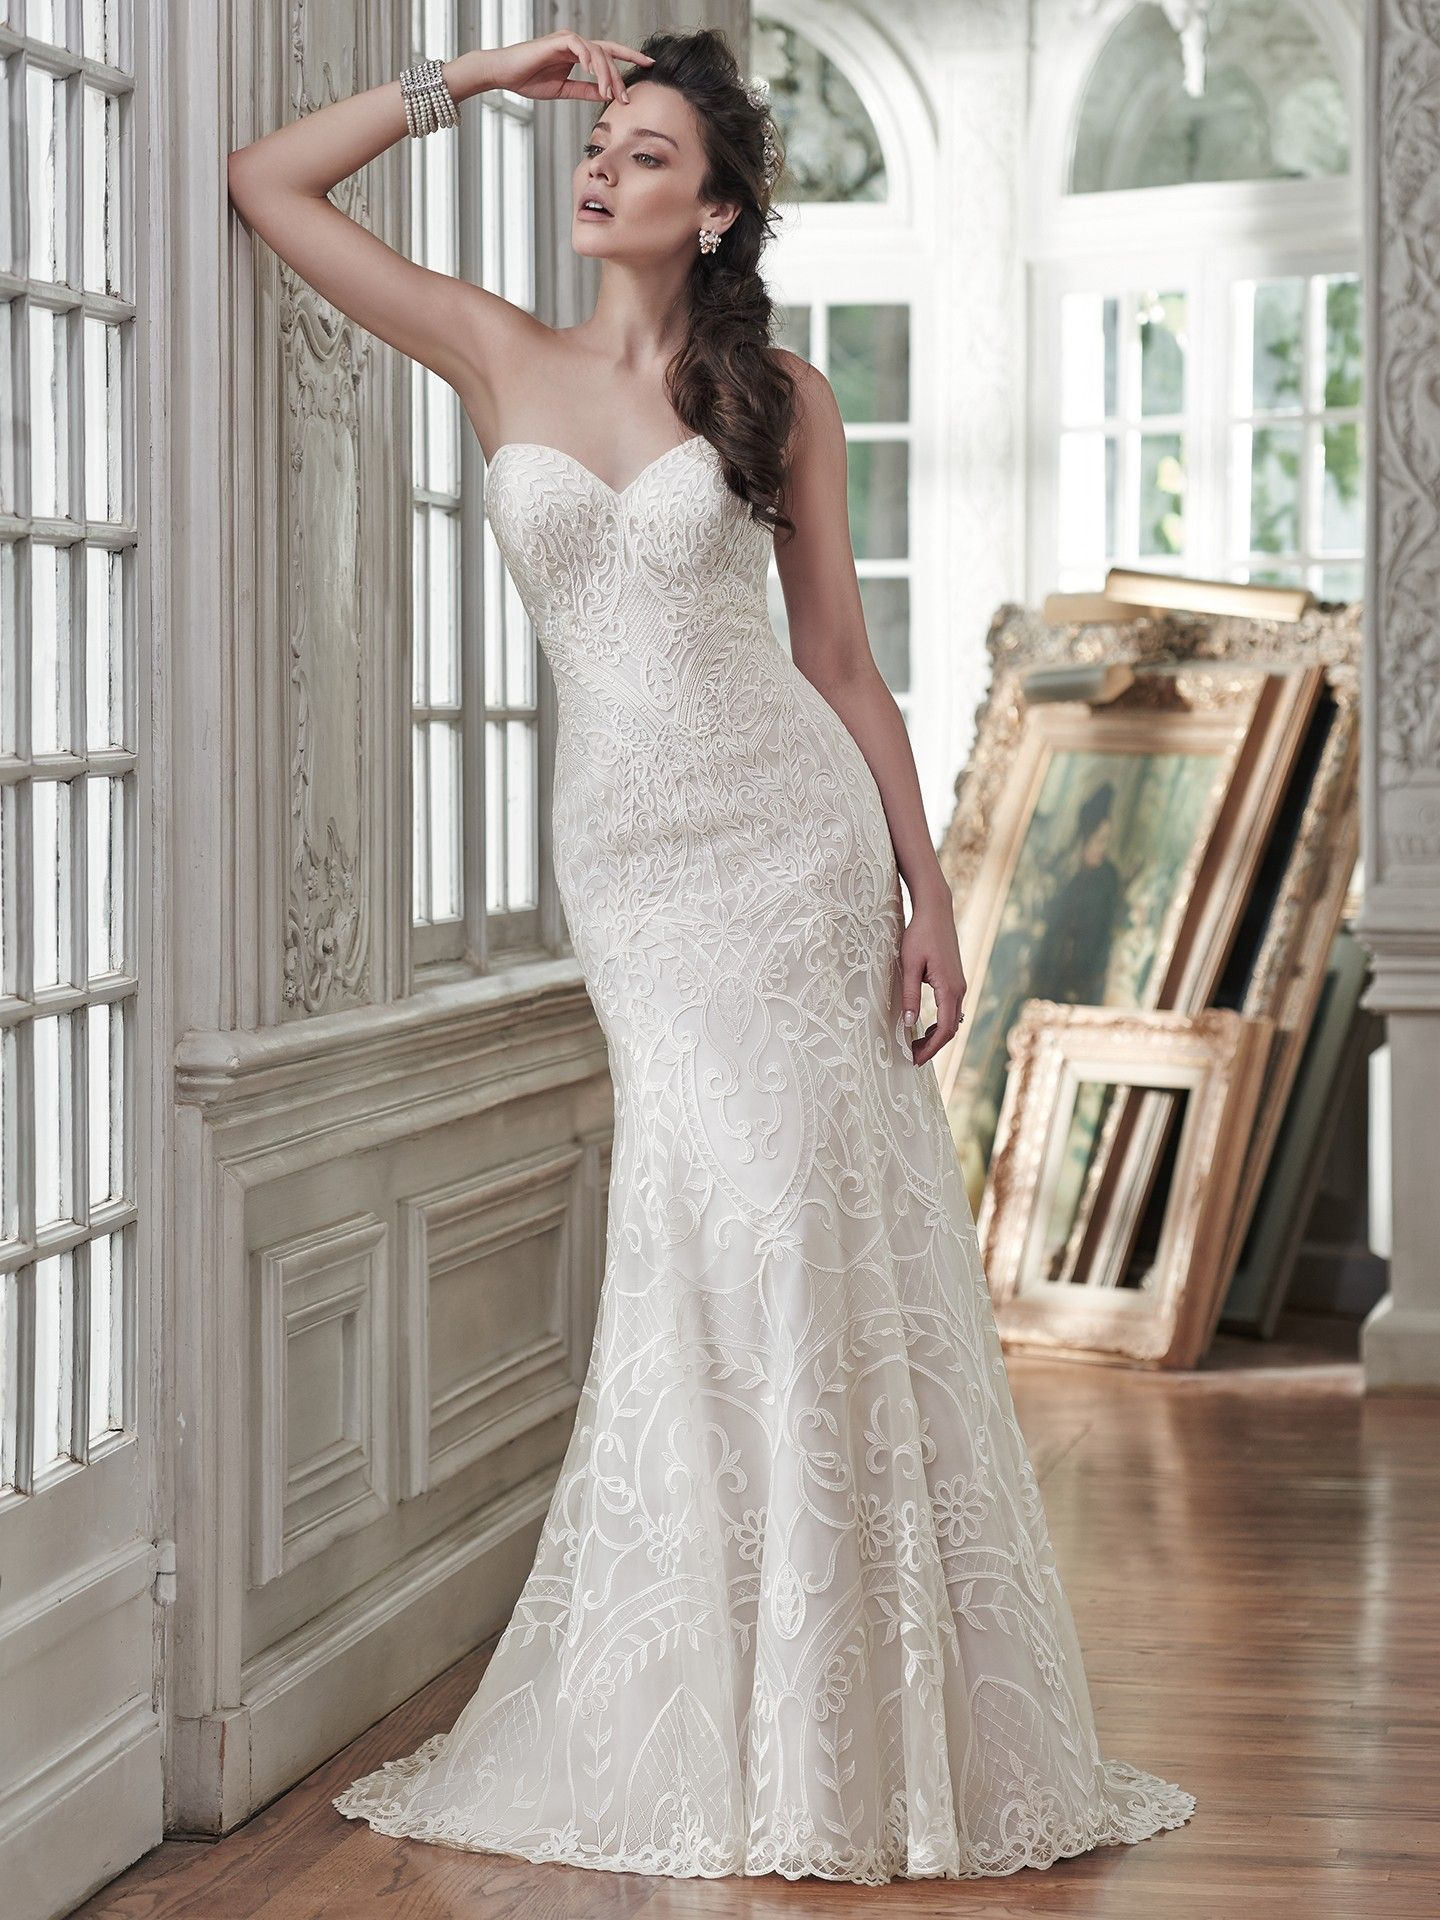 Maggie Sottero Wedding Dresses | Romantic lace, Maggie sottero and ...